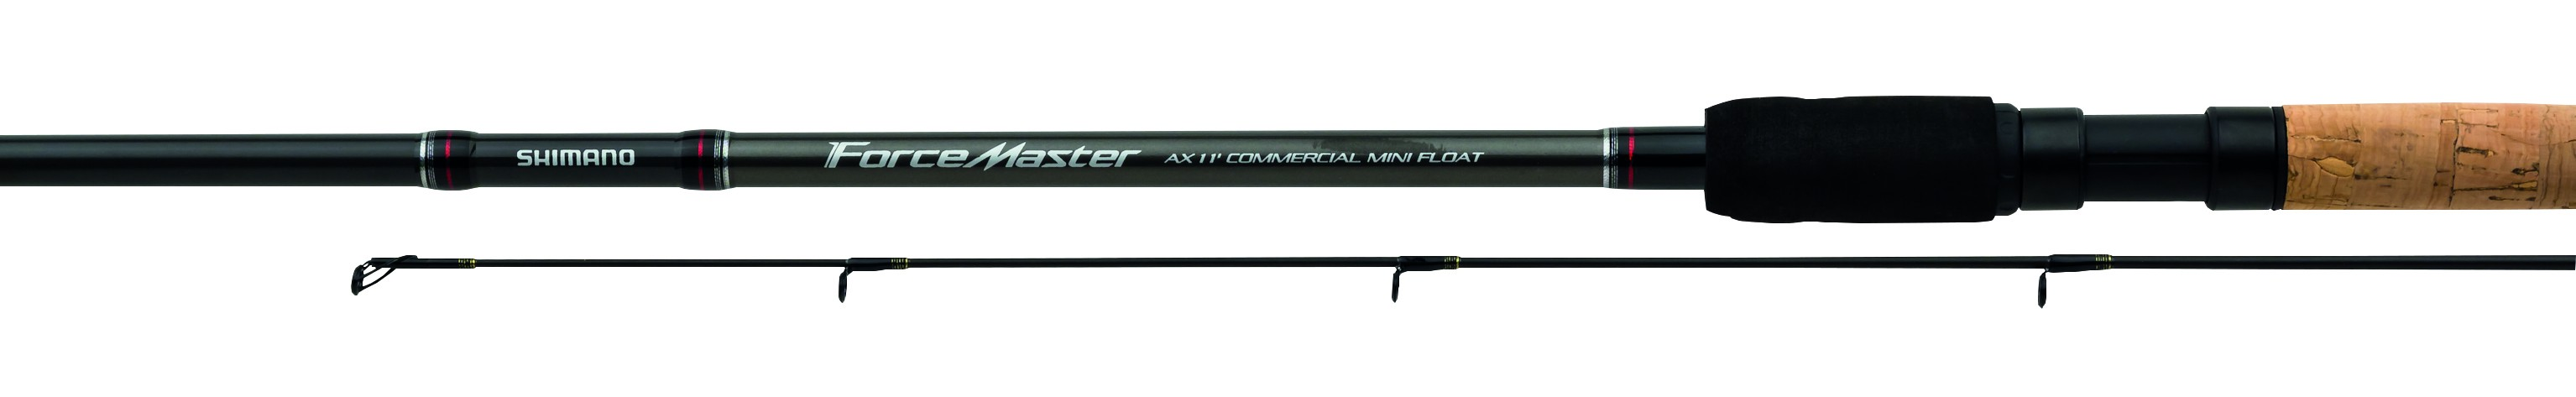 Shimano - Forcemaster AX 11ft Commercial Mini Float Rod